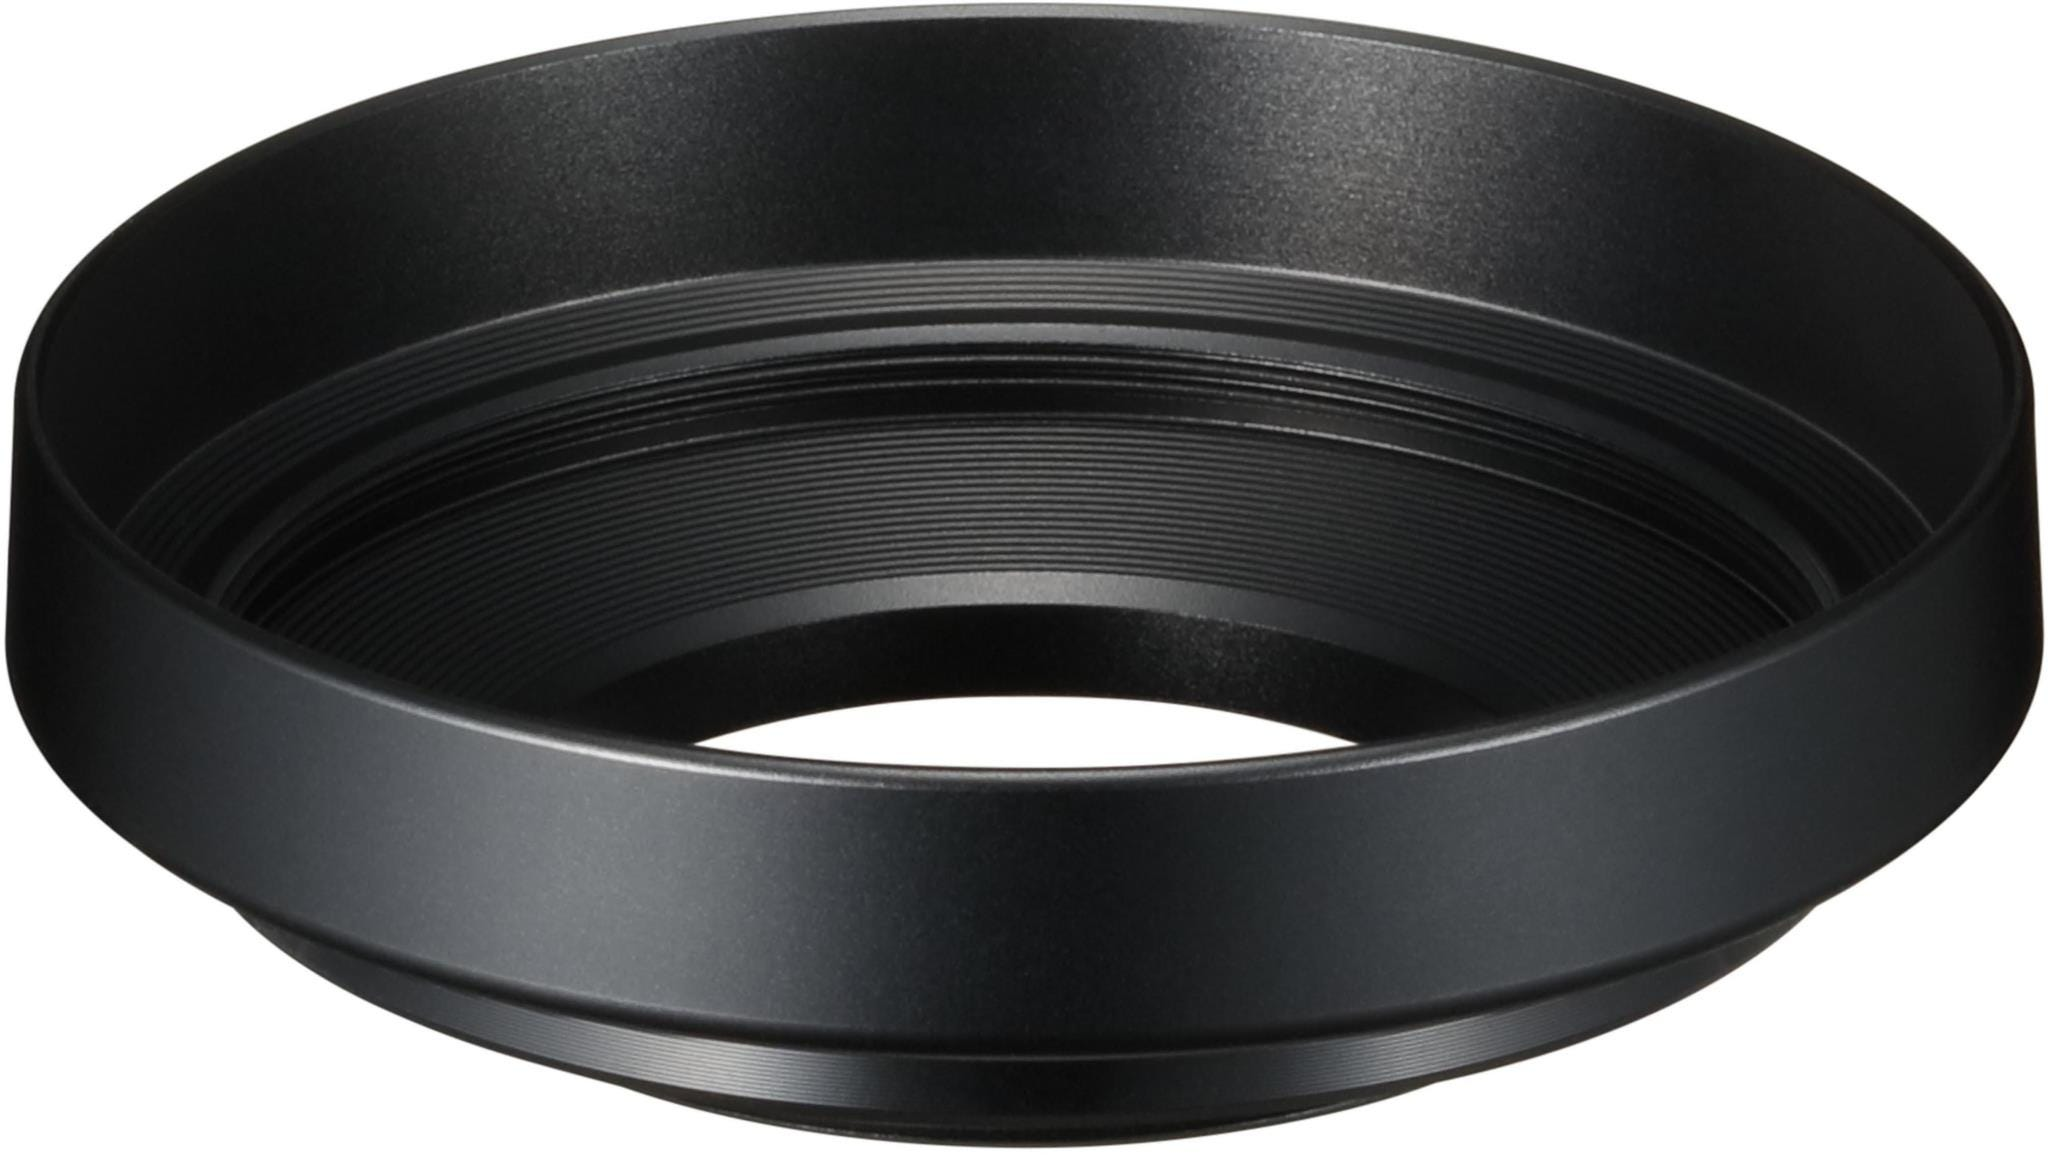 Canon LH-DC110 Lens Hood for G1X MK III